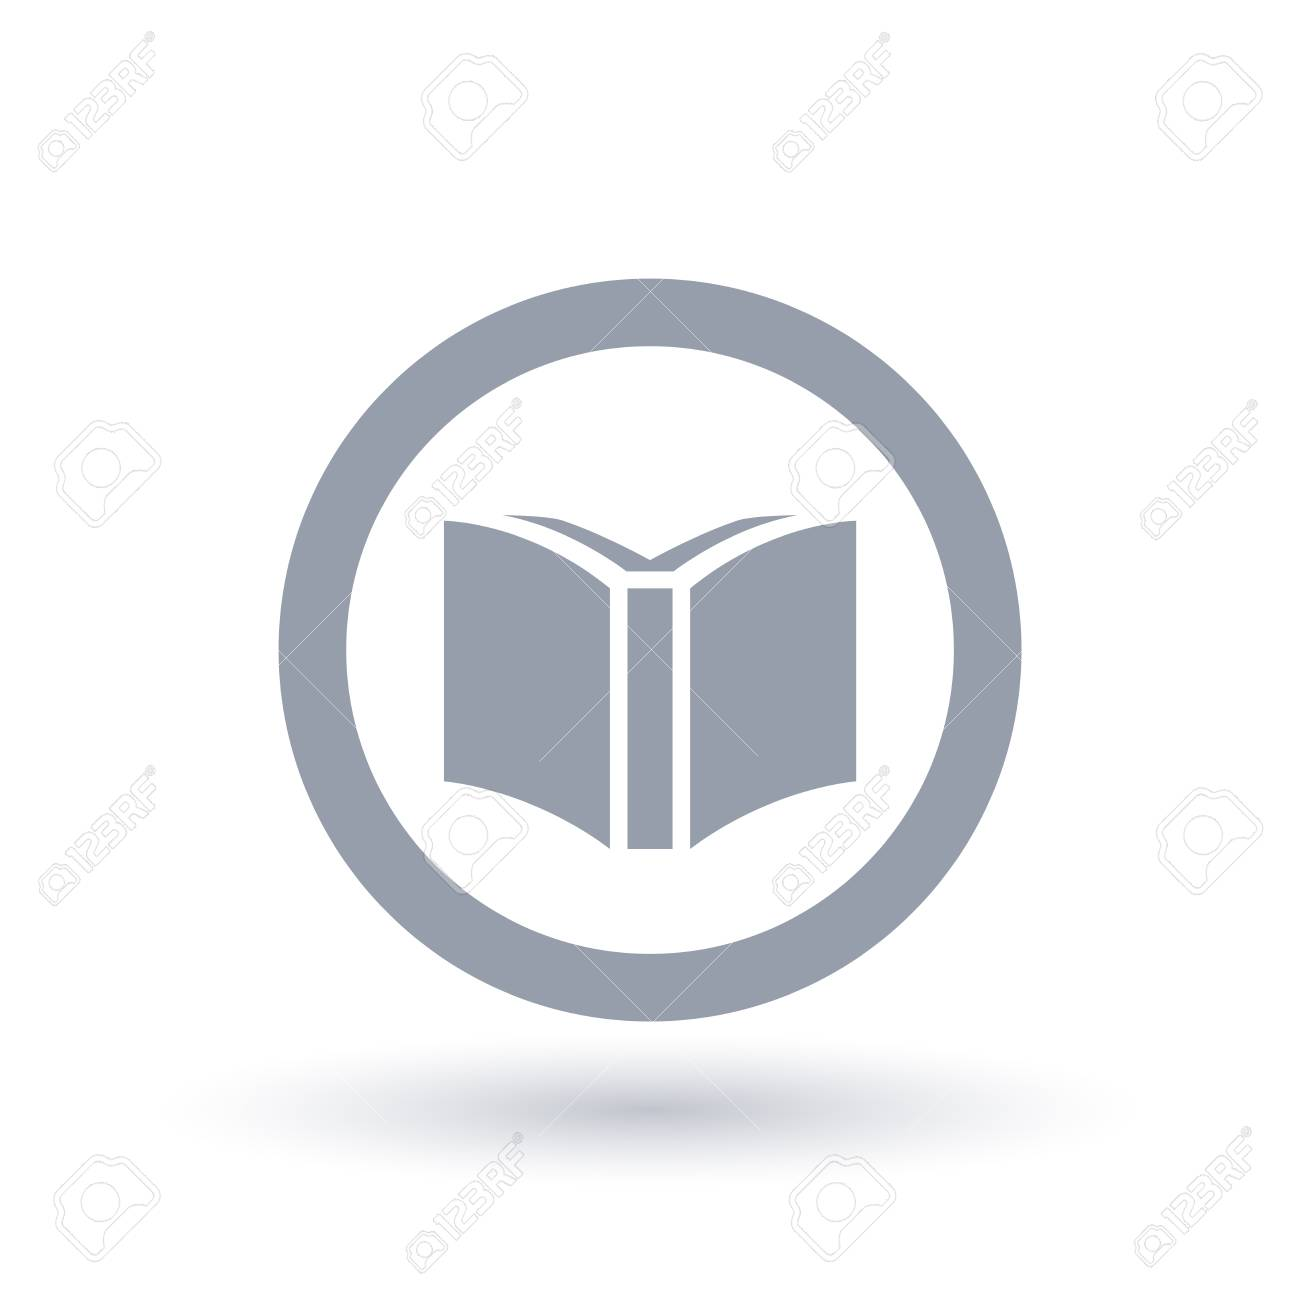 education icon open book in circle symbol library sign vector